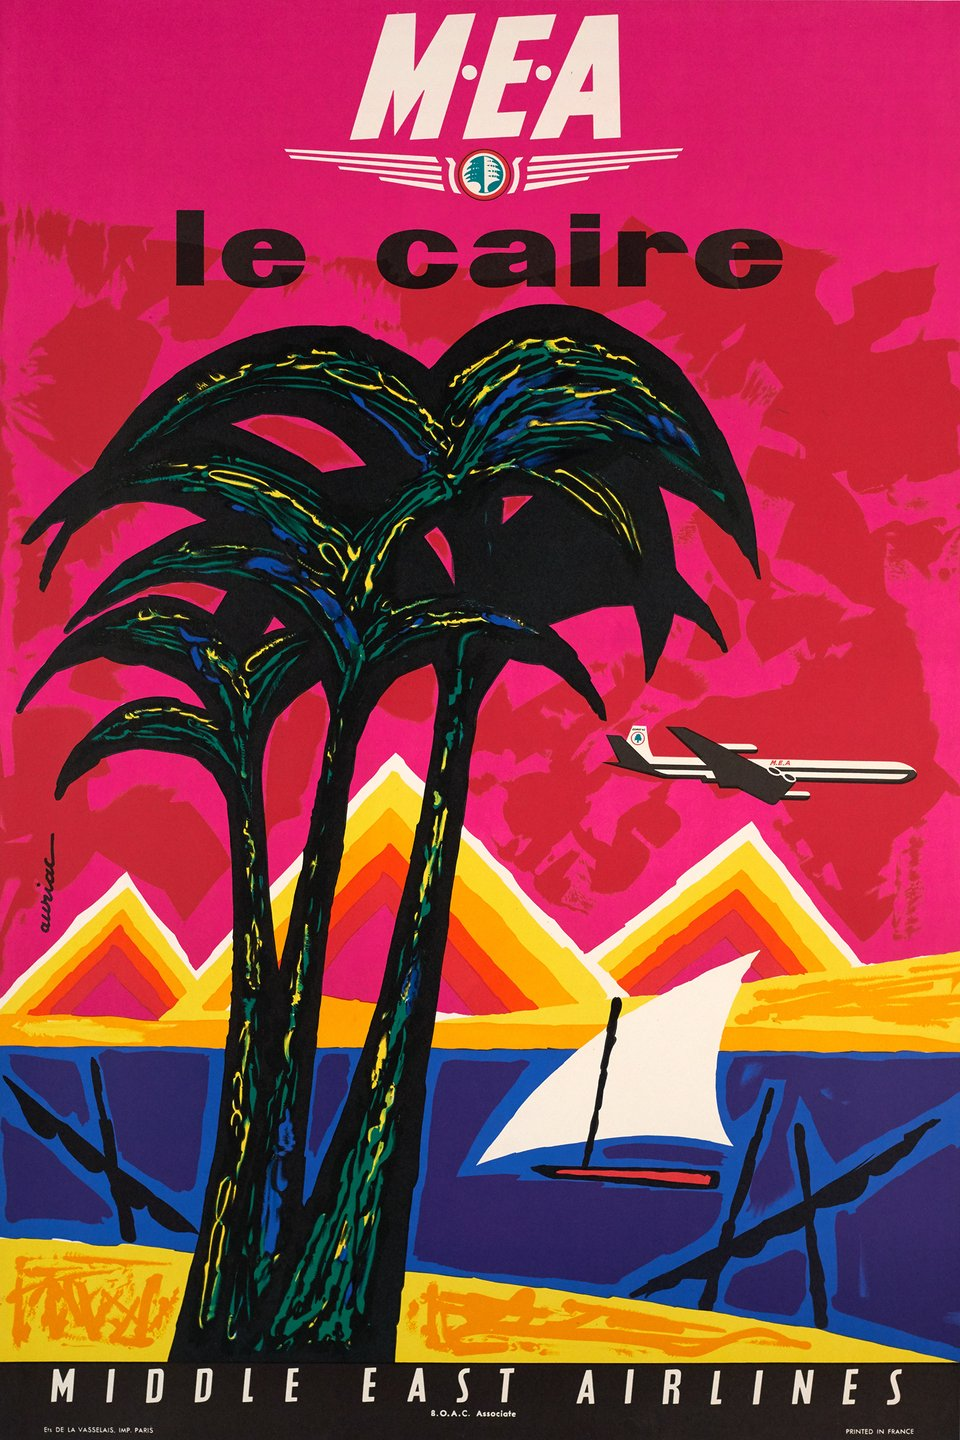 MEA Le Caire, Middle East Airlines – Affiche ancienne – Jacques AURIAC – 1961